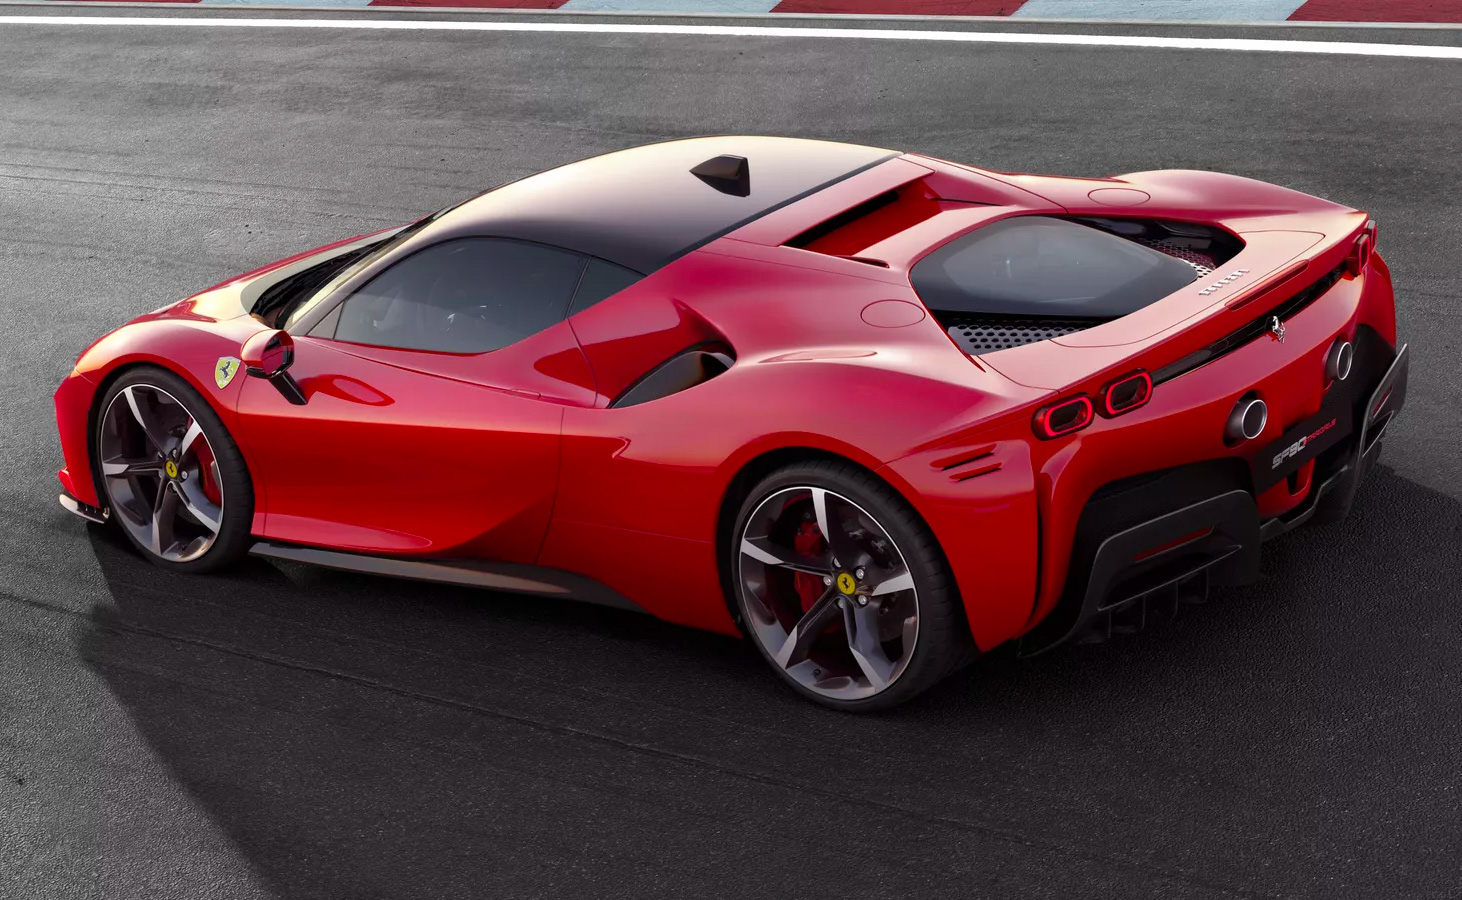 Ferrari's New SF90 Stradale Hybrid Is Here (Almost) at werd.com